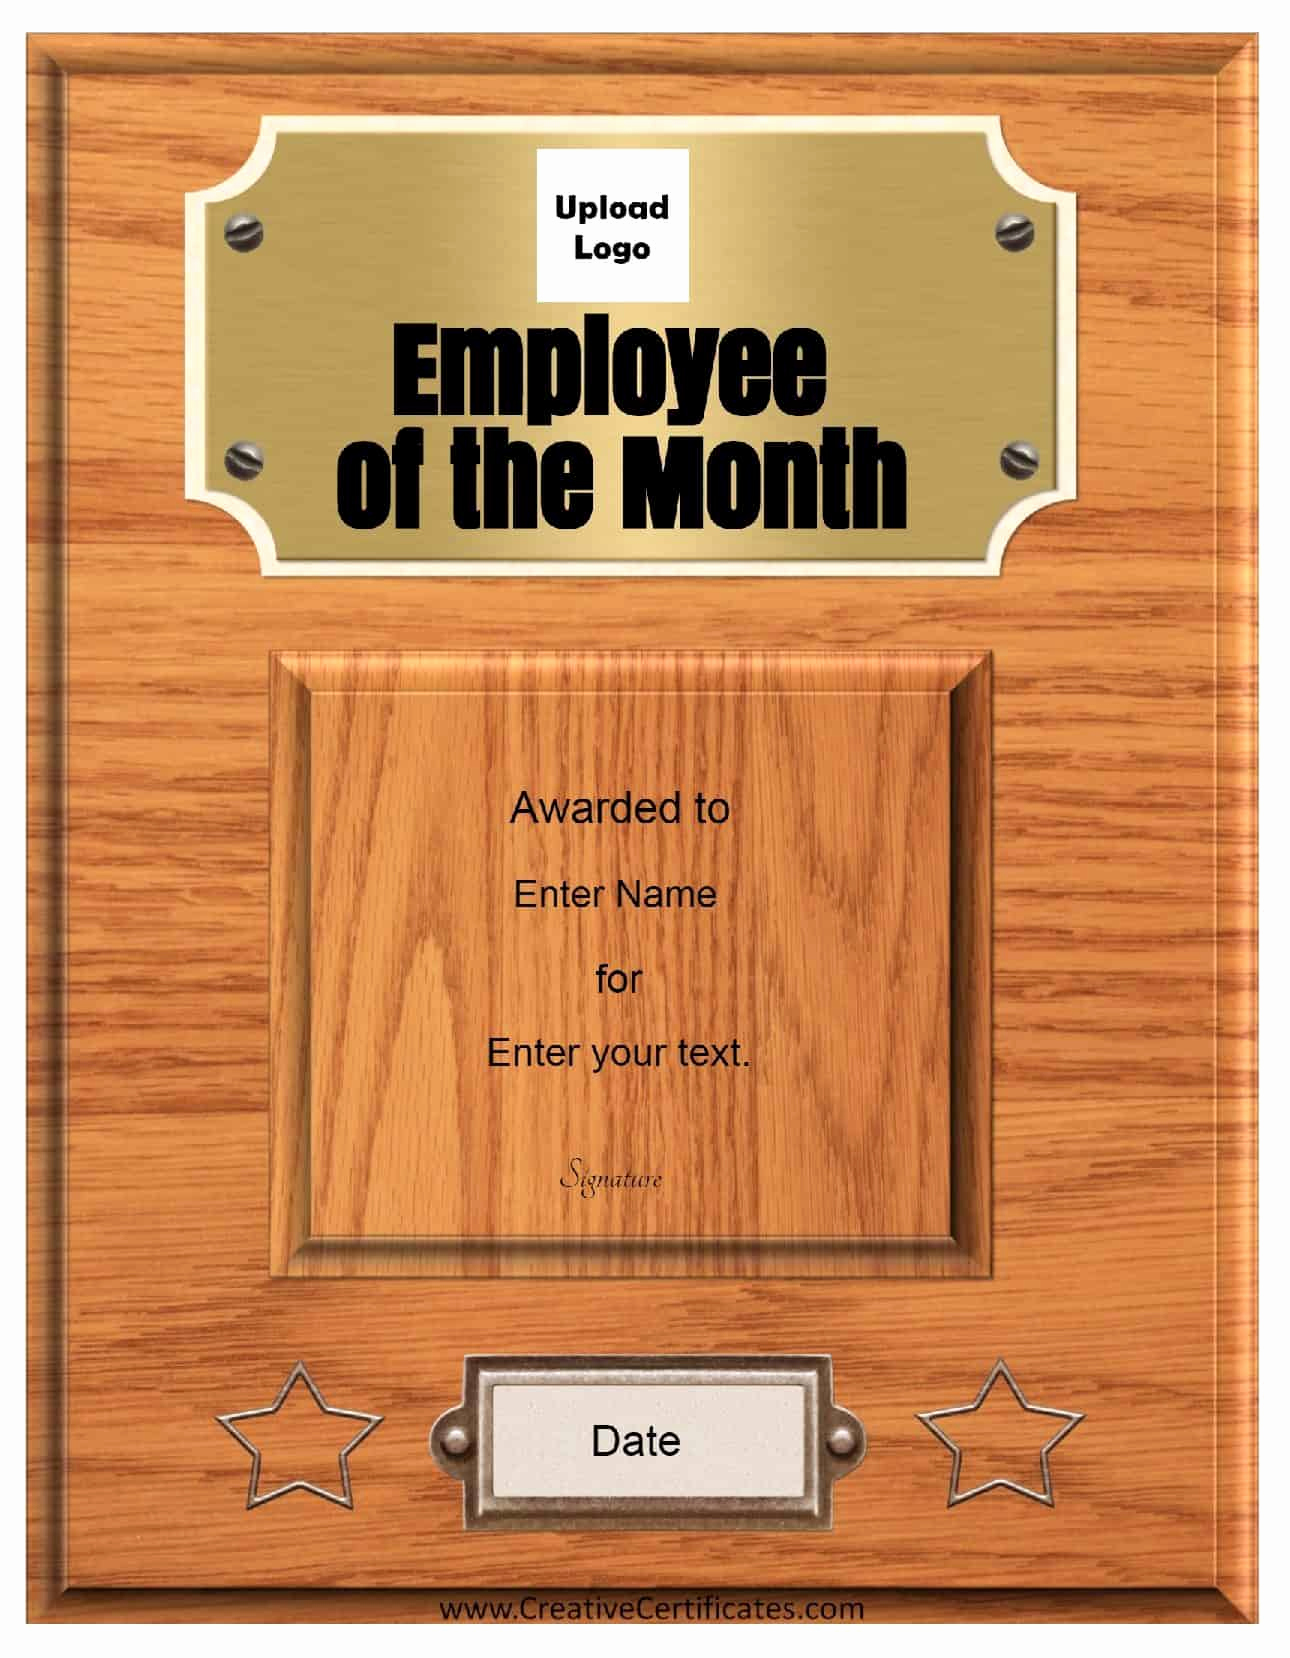 Employee Of the Month Template New Free Custom Employee Of the Month Certificate